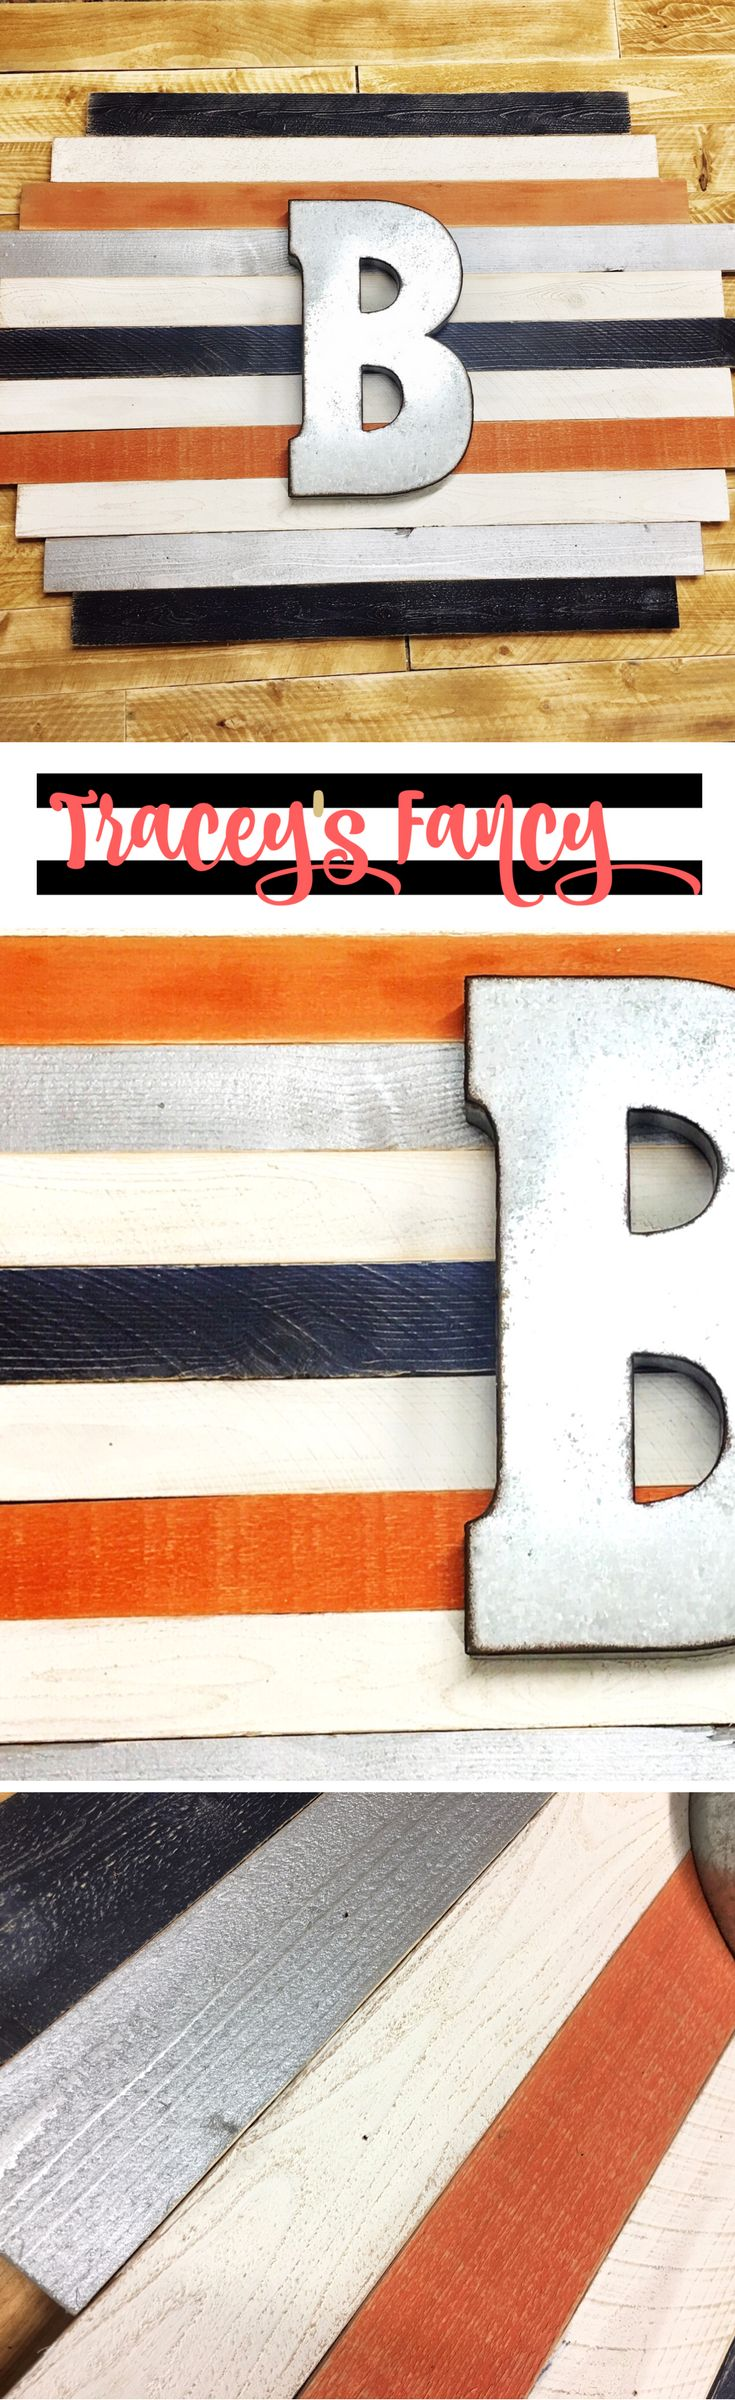 Boys Nursery Wall Art Ideas | Nursery Decorating Ideas for Boys | DIY Wall Art | Orange, Navy, Blue and Silver paint colors | Painting Tips by Tracey's Fancy